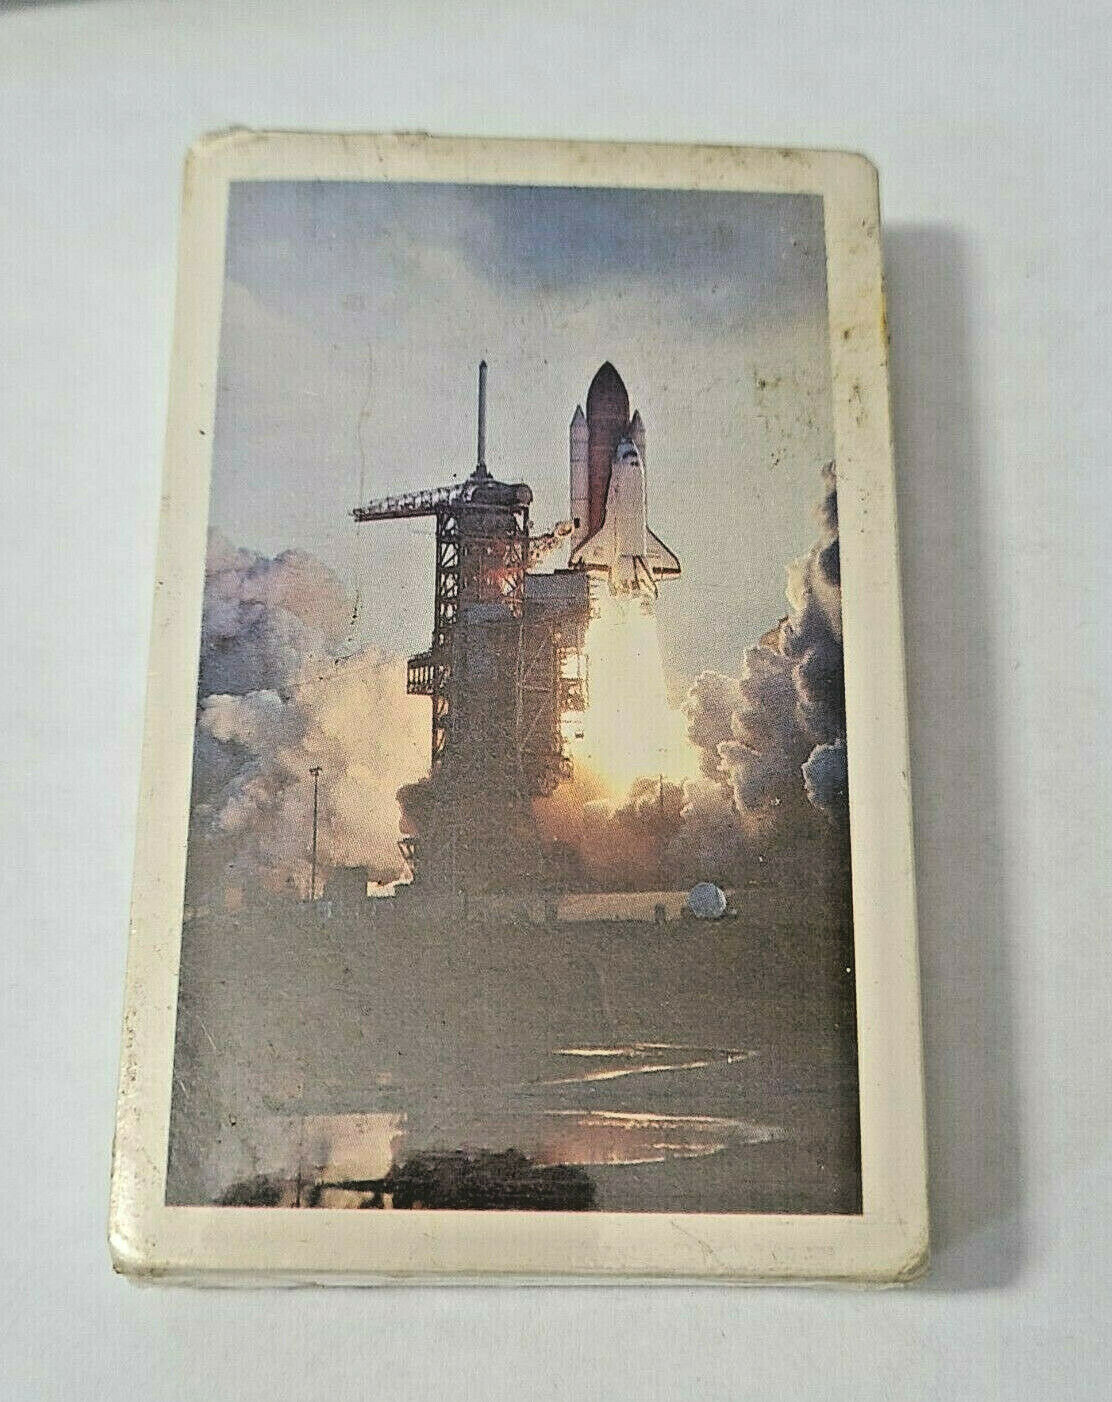 Space Shuttle Deck of Arrco Playing Card Co. Playing Cards   (#22)